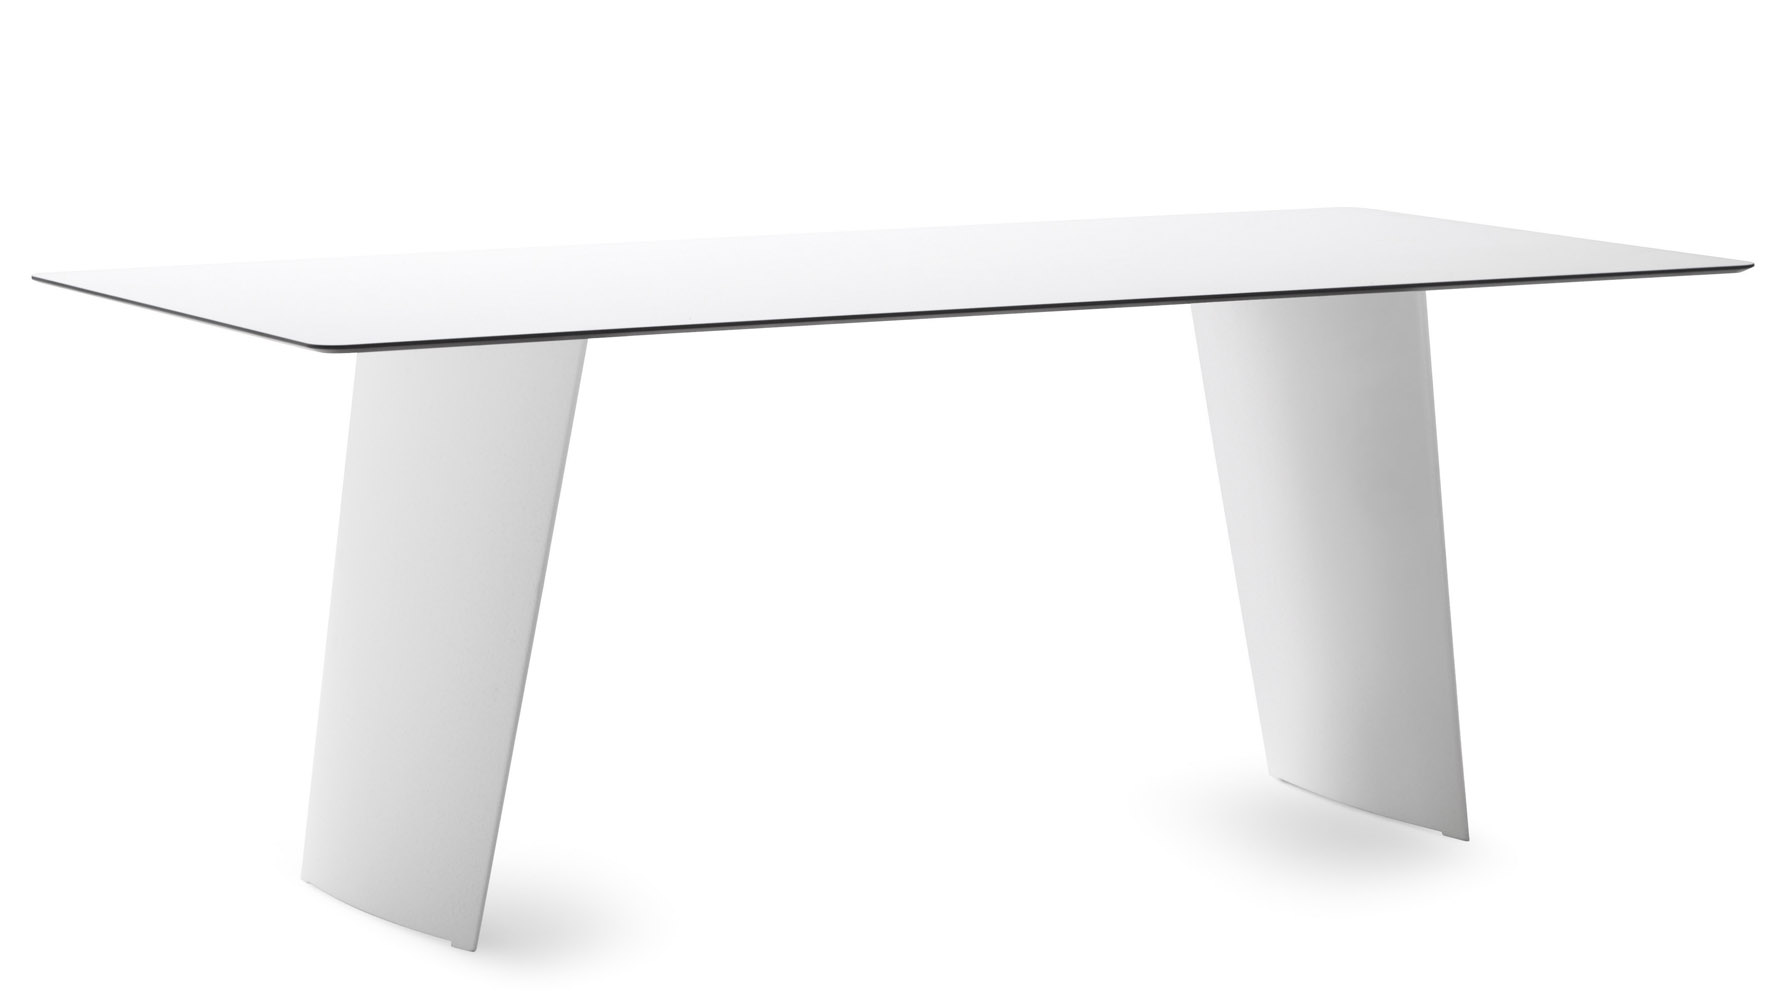 Petra High Gloss White Rectangular Dining Table Zuri Furniture - White rectangular outdoor dining table